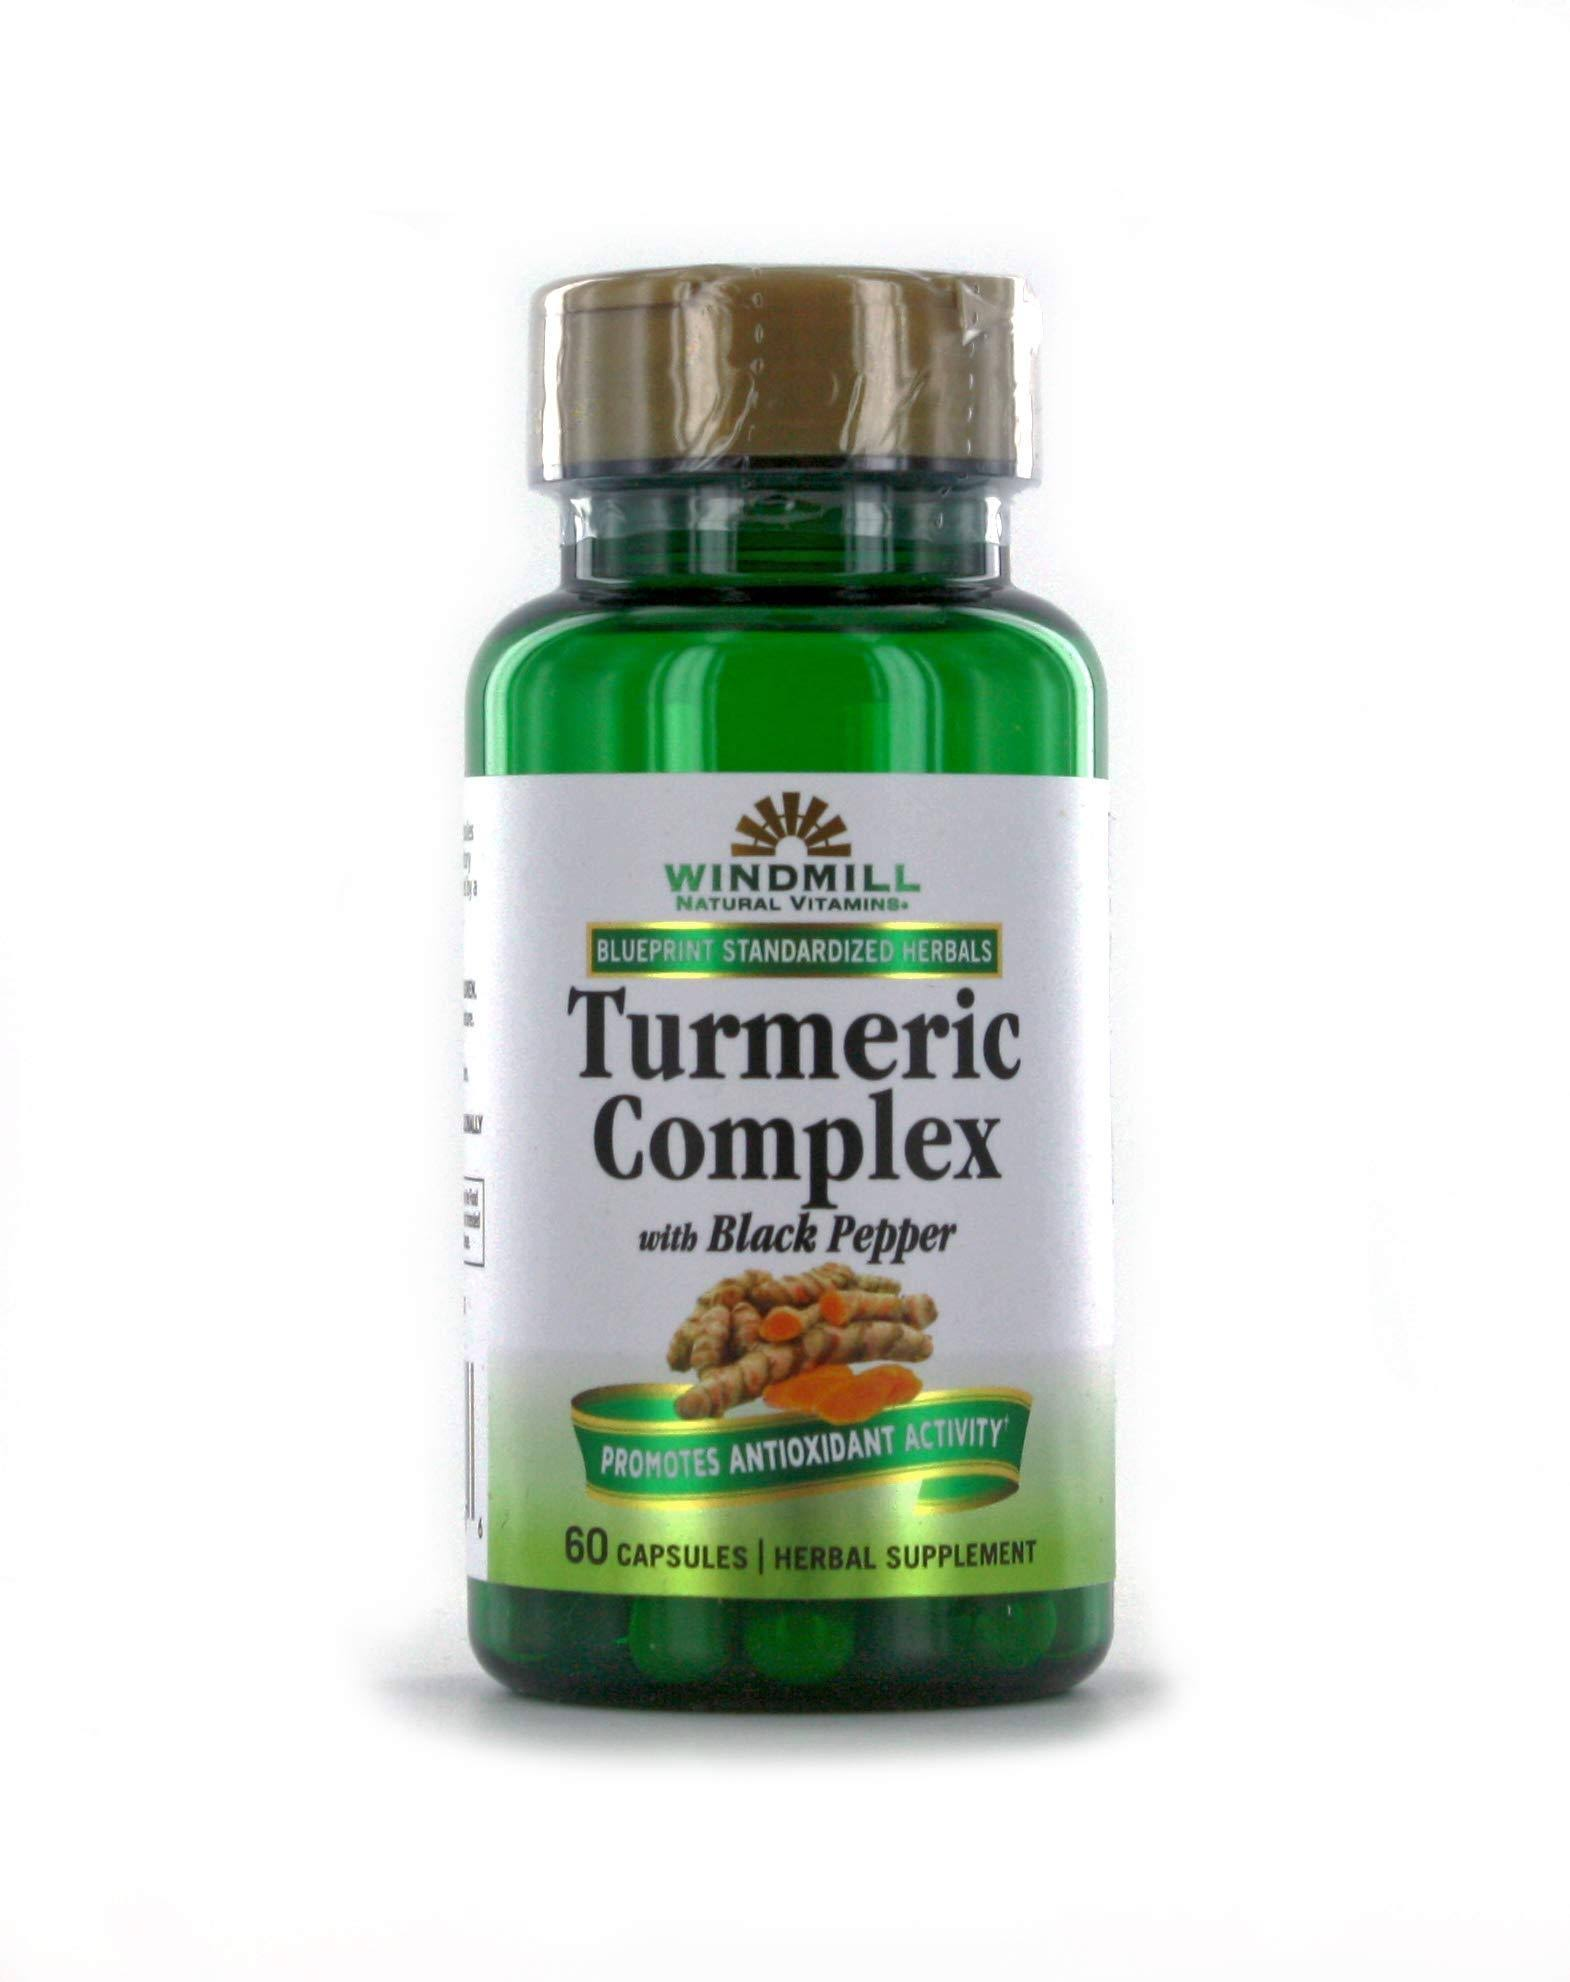 Windmill Turmeric Complex Herbal Supplement Capsules 60 CP